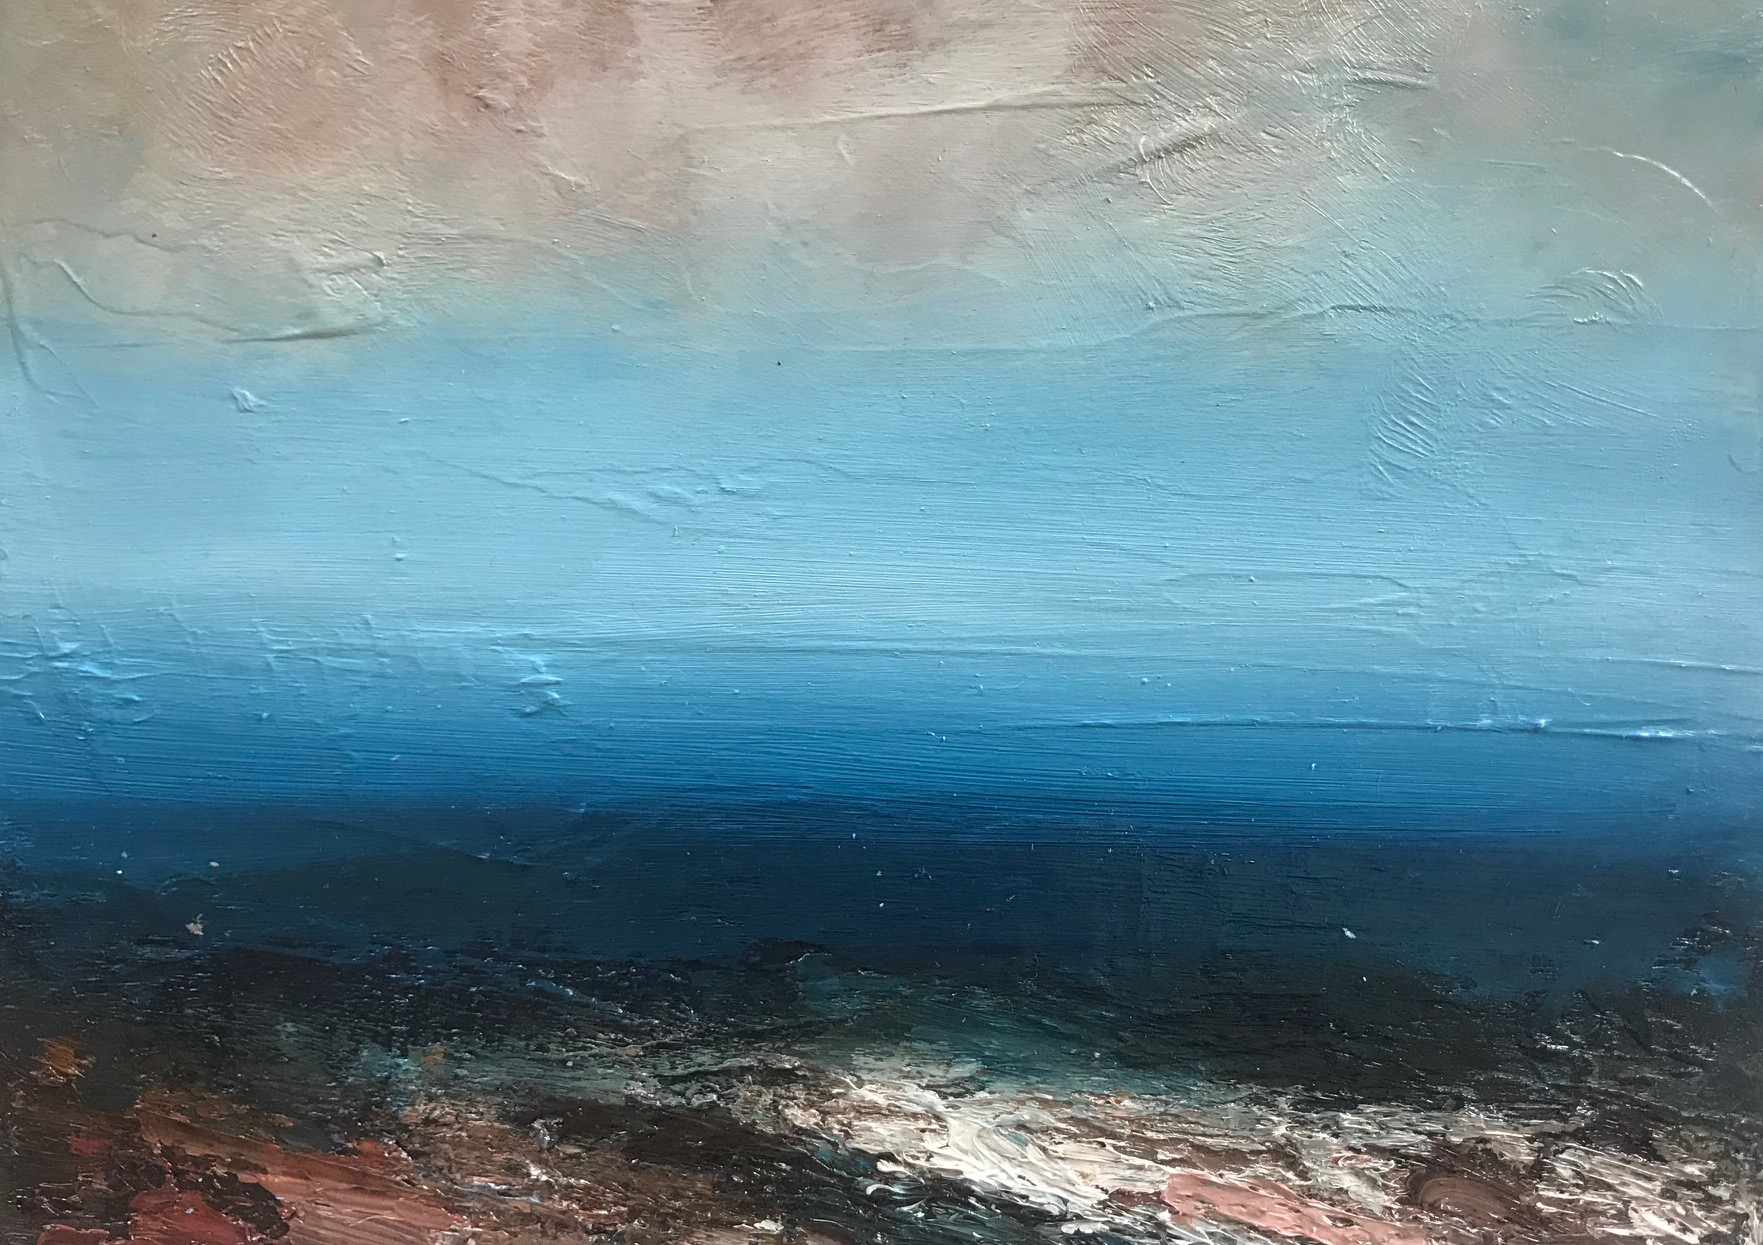 Title: Seascape 1  Size: 28 x 20 cm (framed size 55 x 47 cm)  Medium: Oil on panel  Price: £360   Buy Now